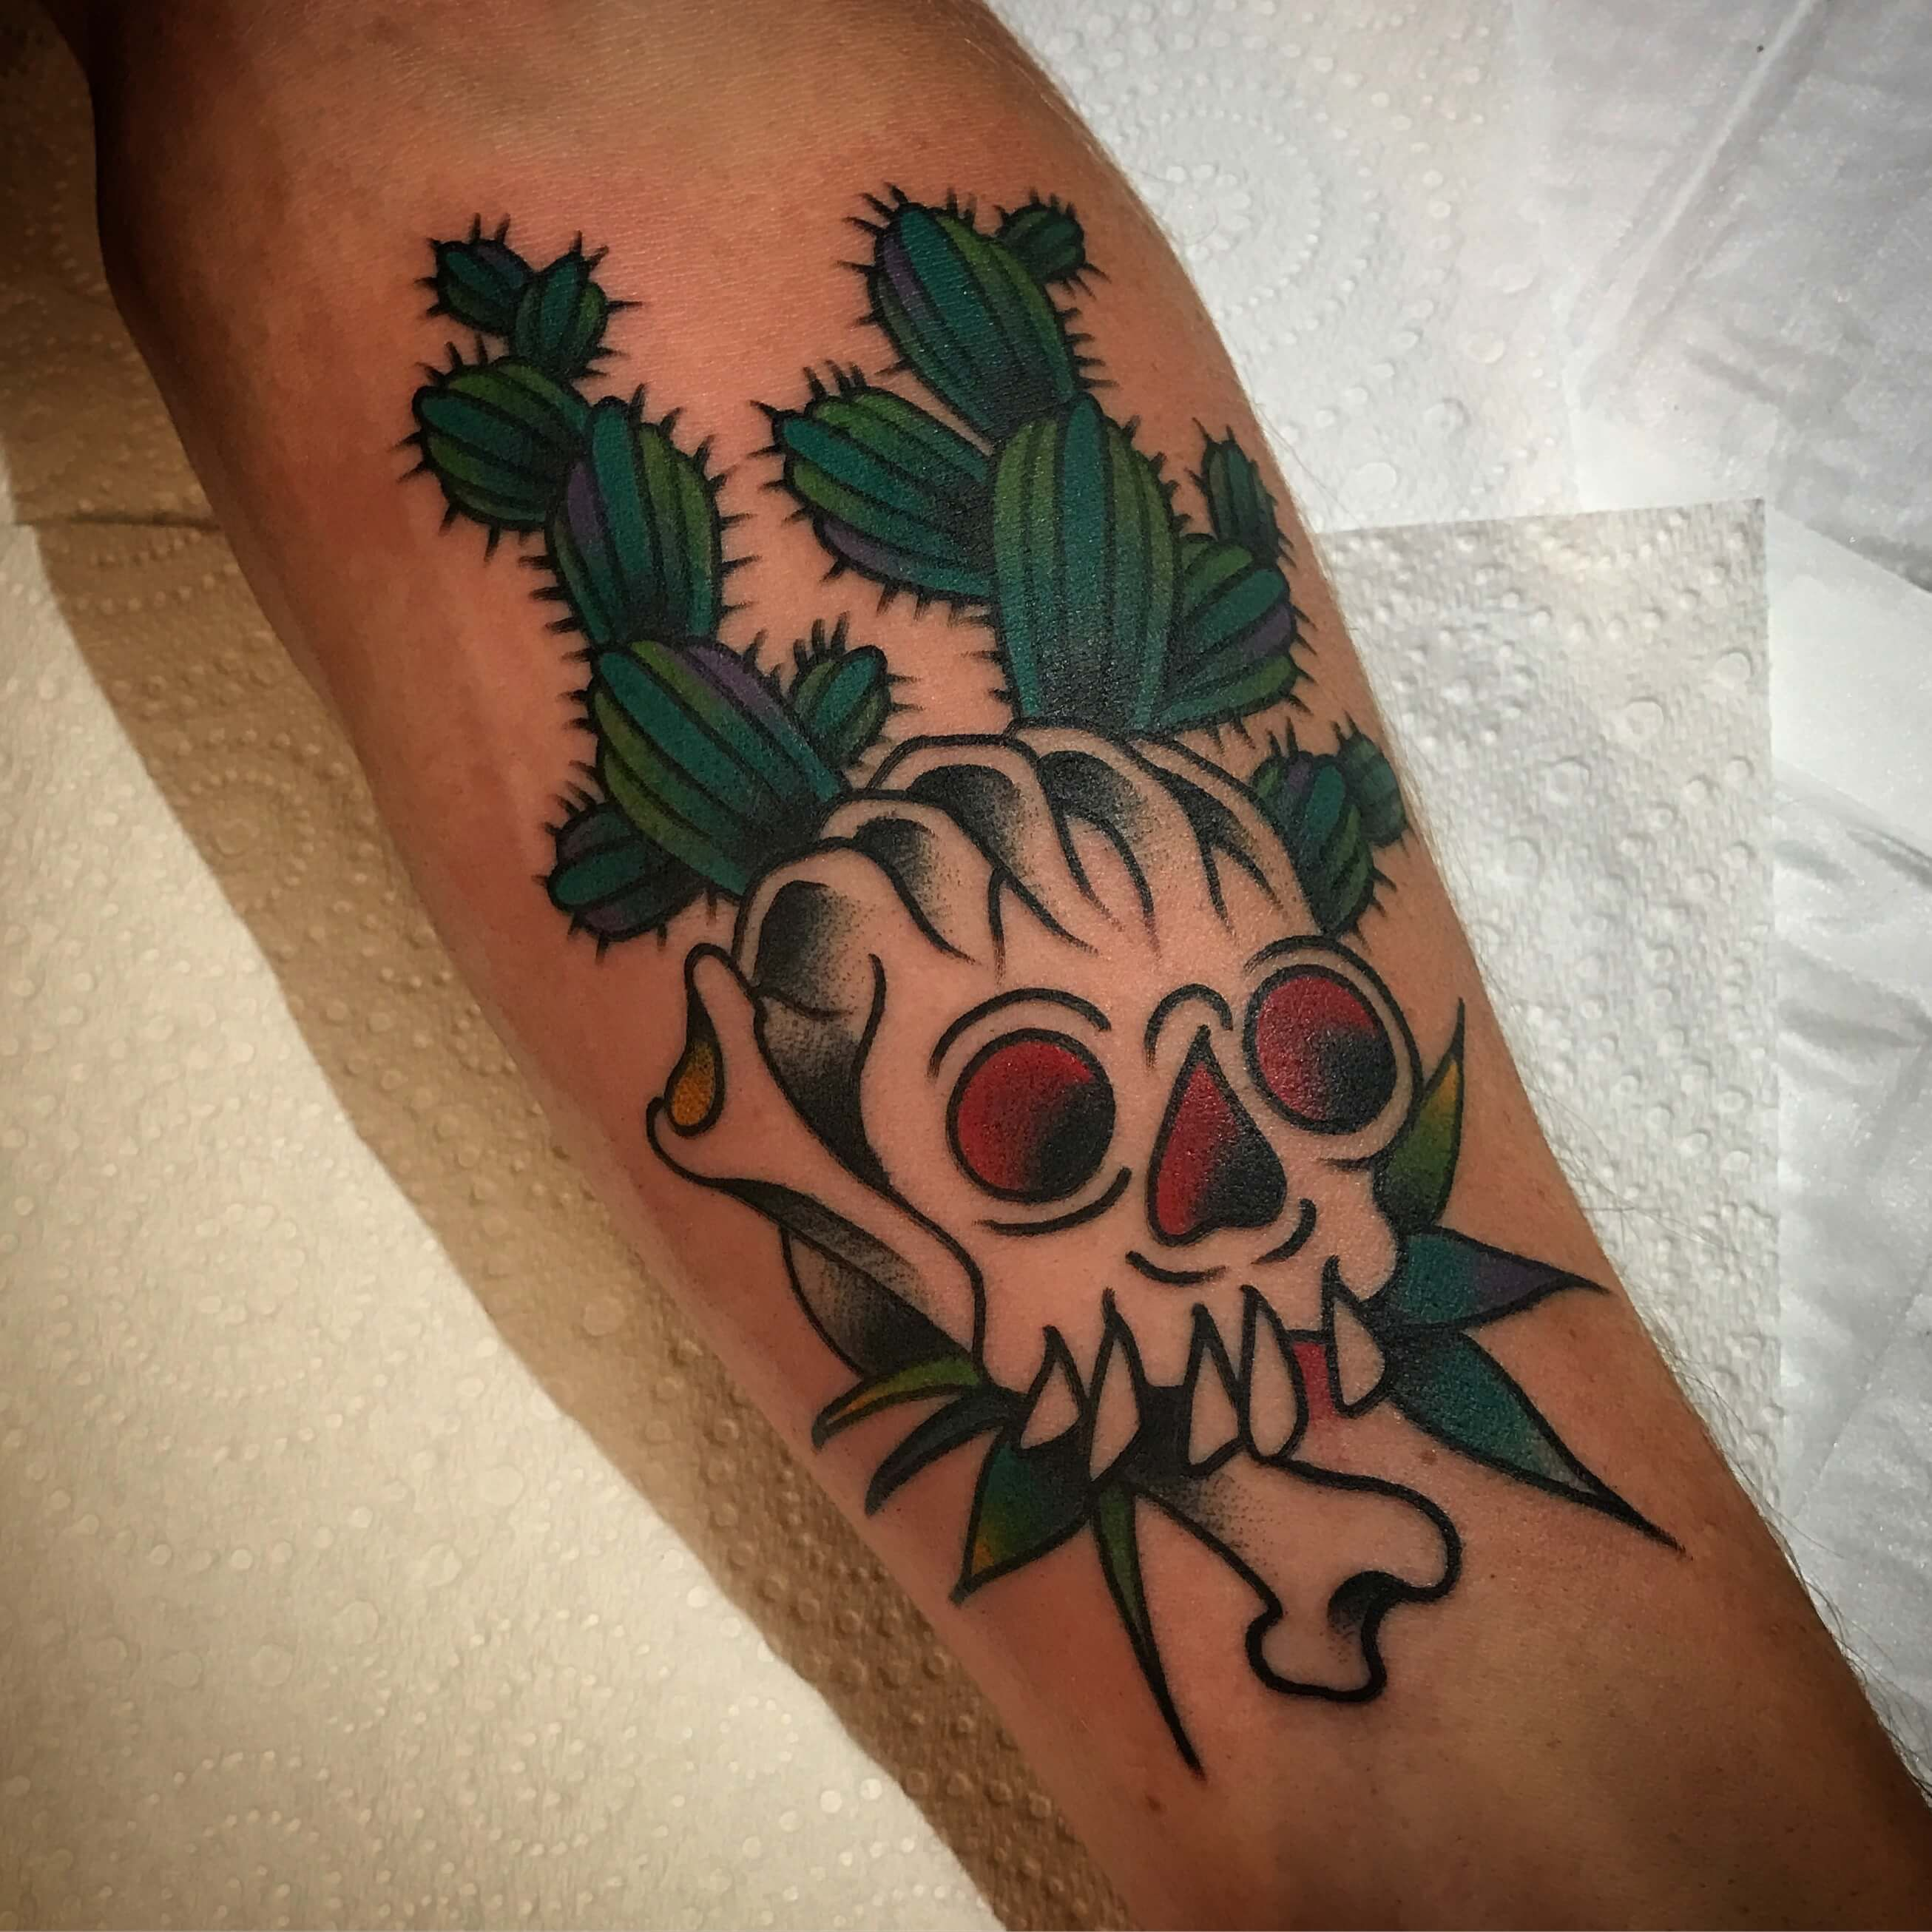 Choosing the best melbourne tattoo shop tips to look for